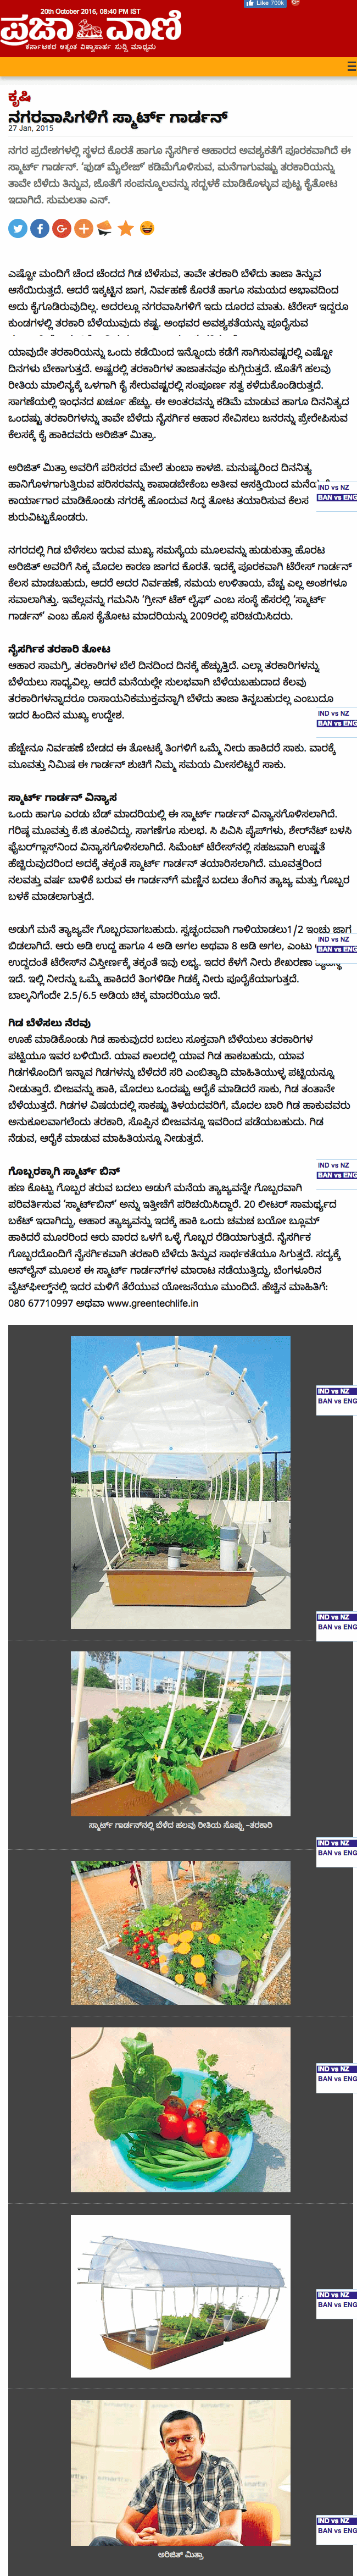 prajavani_optimized